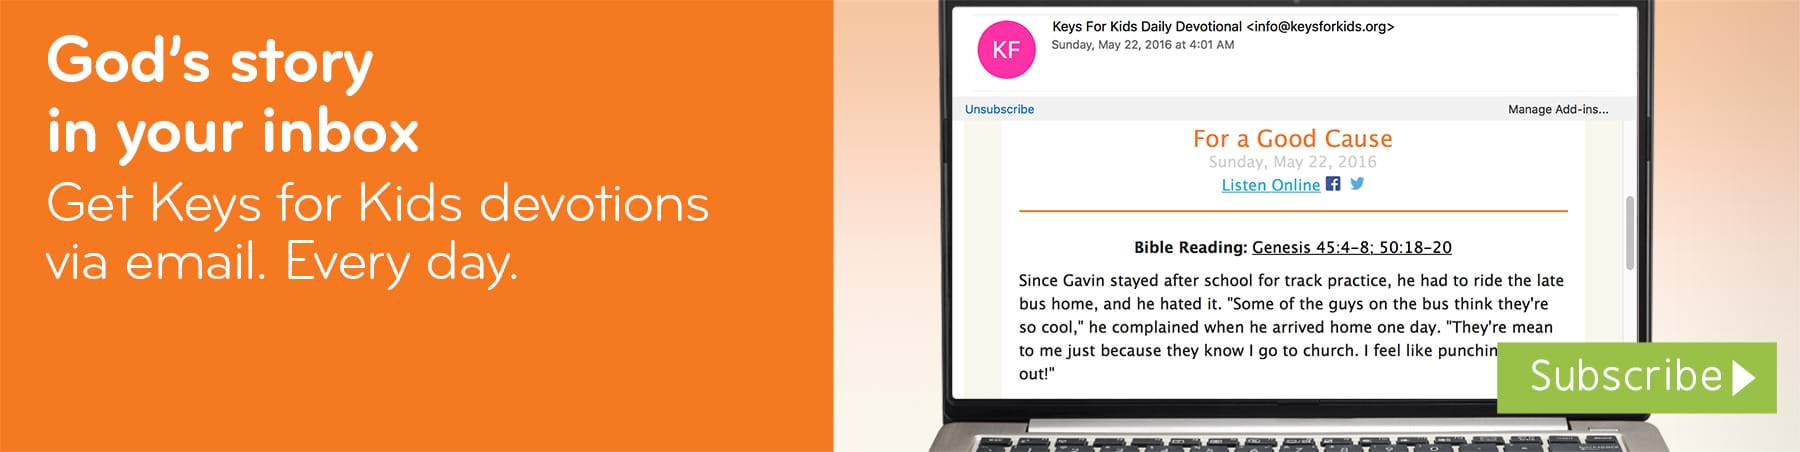 God's story in your inbox. Get Keys for Kids devotions via email. Every day.